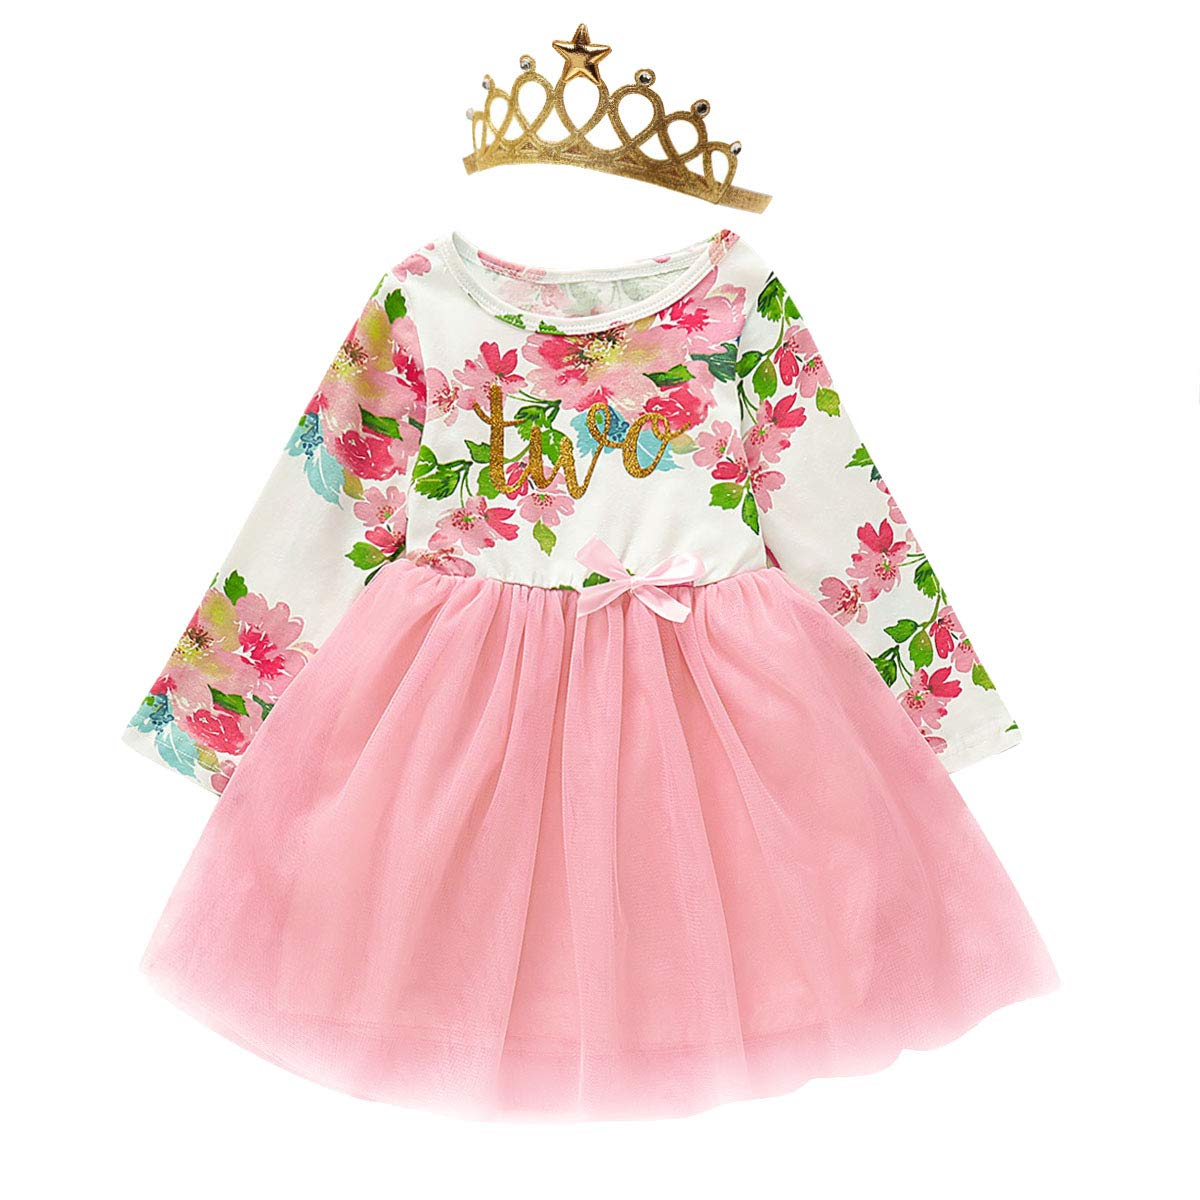 Baby Girl Birthday Dress Set Little Girls Floral Lace Outfit Sets